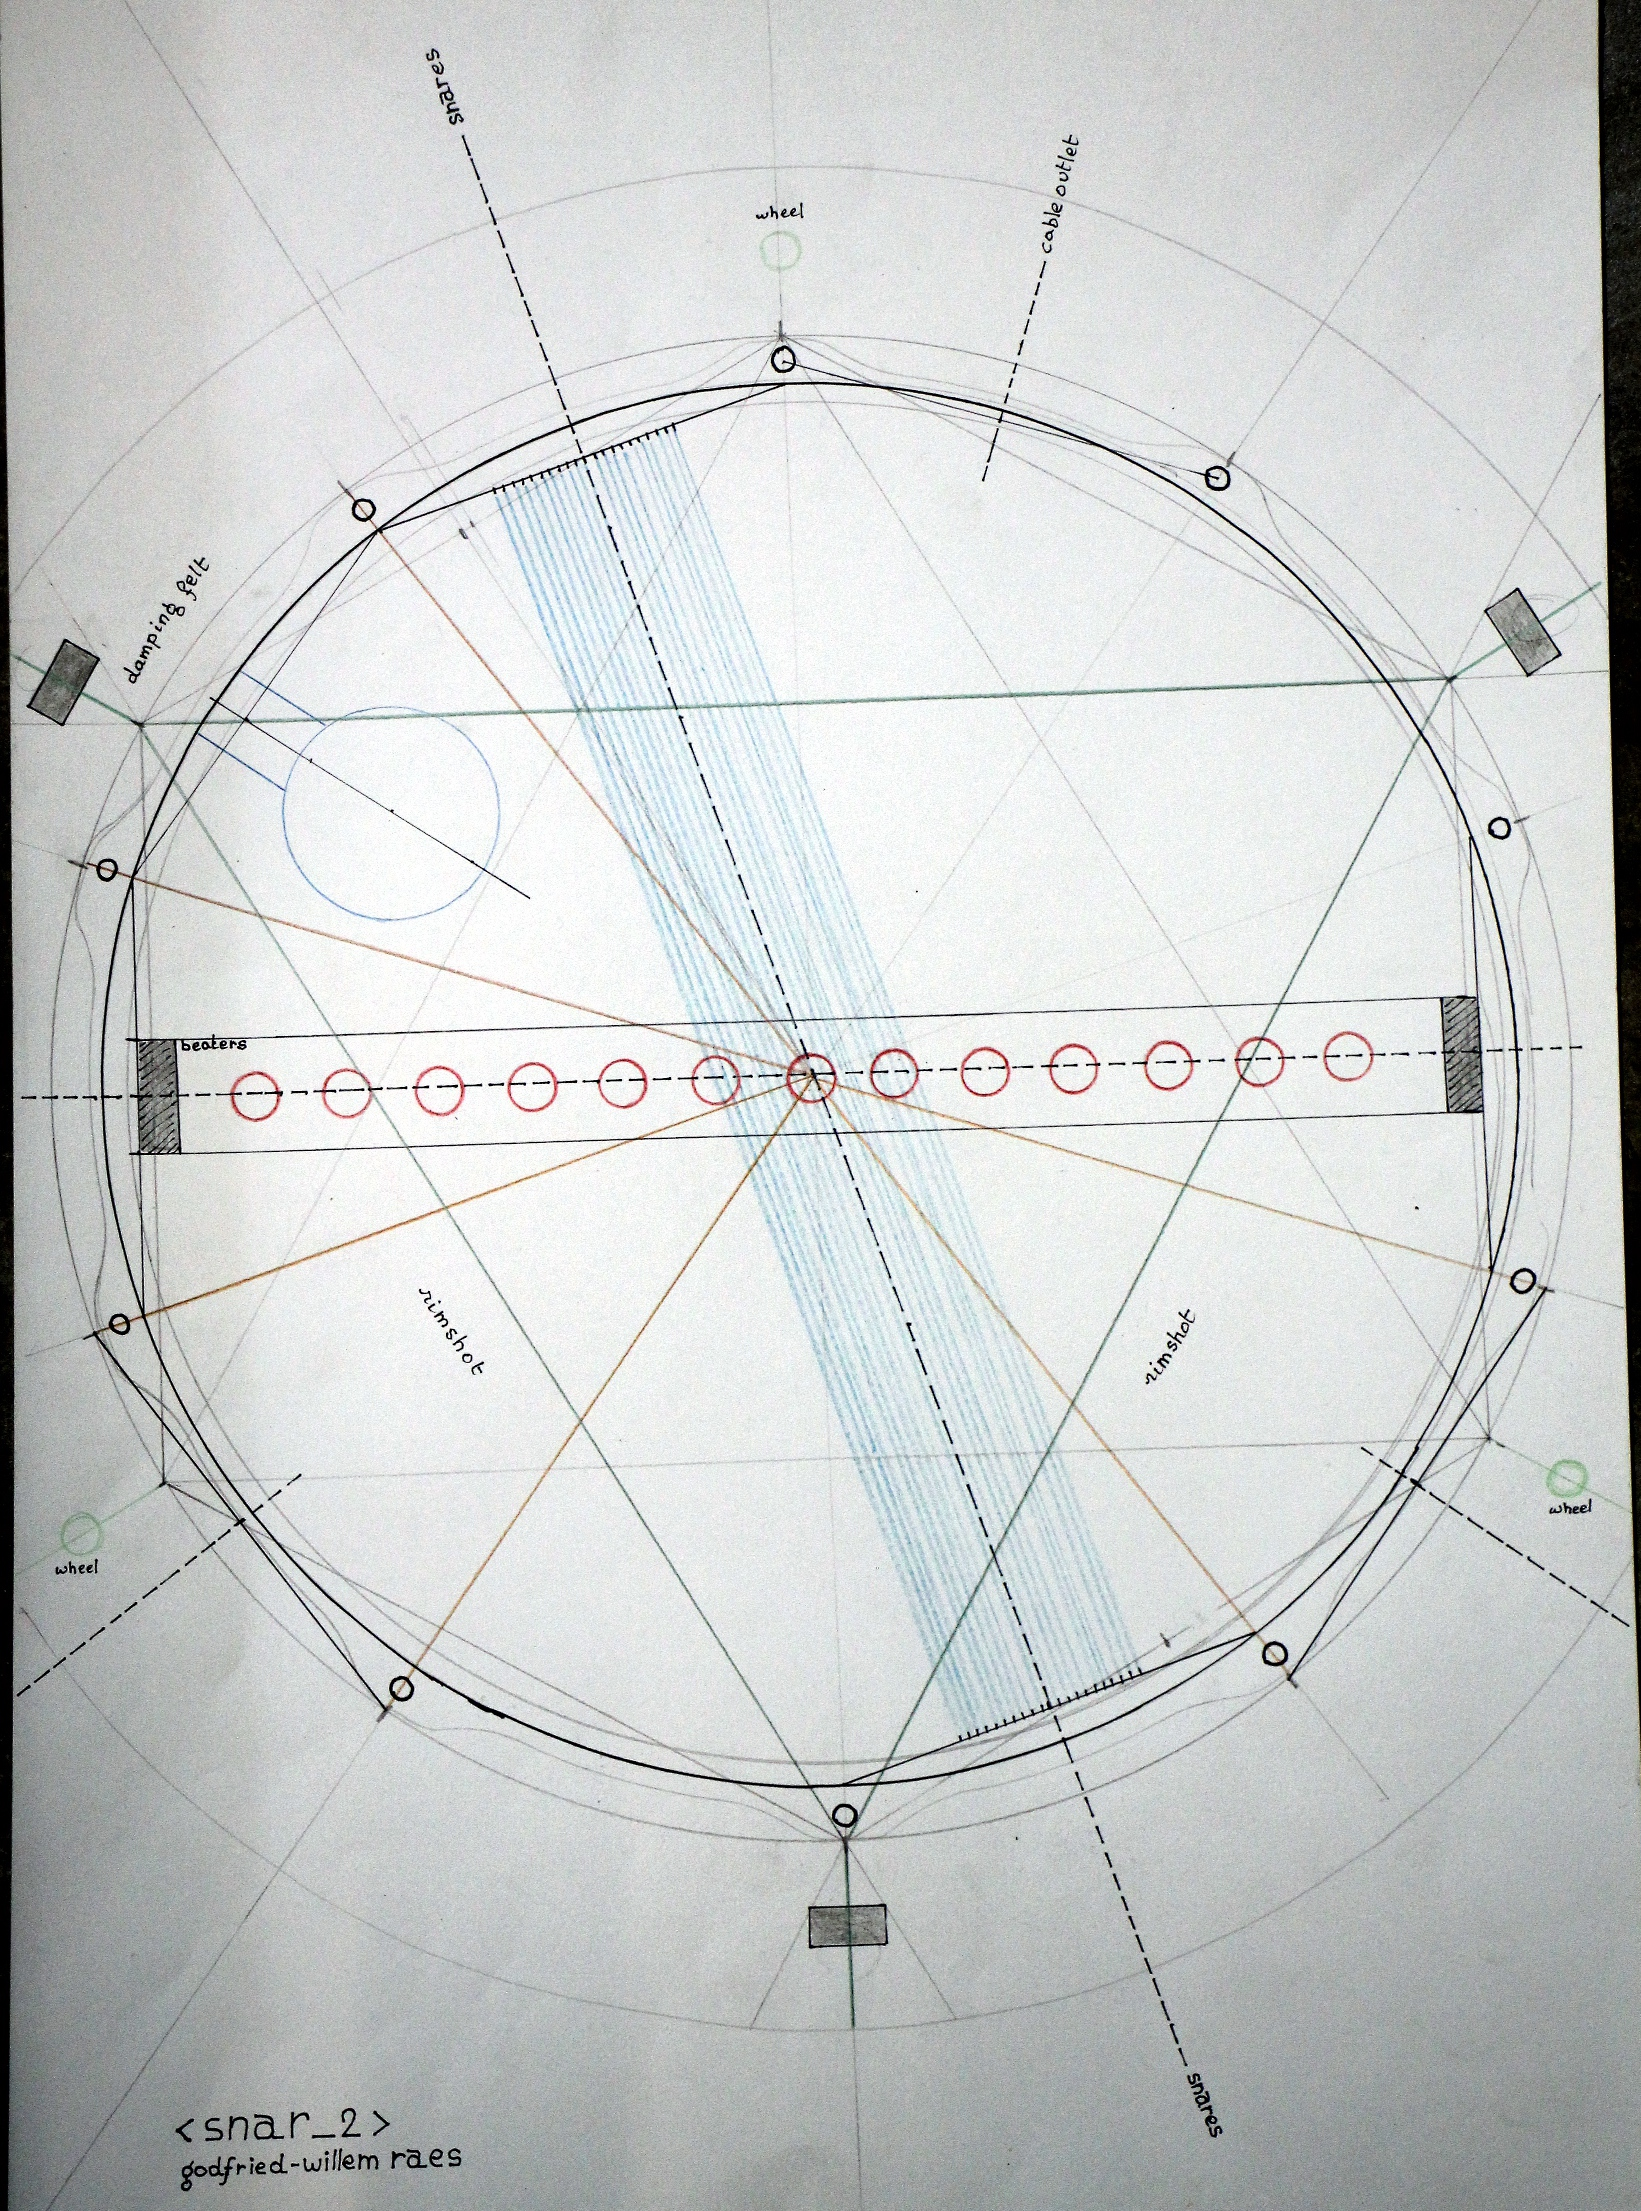 Snar 2 An Automated Snare Drum For Aphex Twin By Godfried Willem Raes Memo Board Flashing Light Circuit 02042014 Detailed Technical Drawing Finished Scale 11 The Original Is Size A2